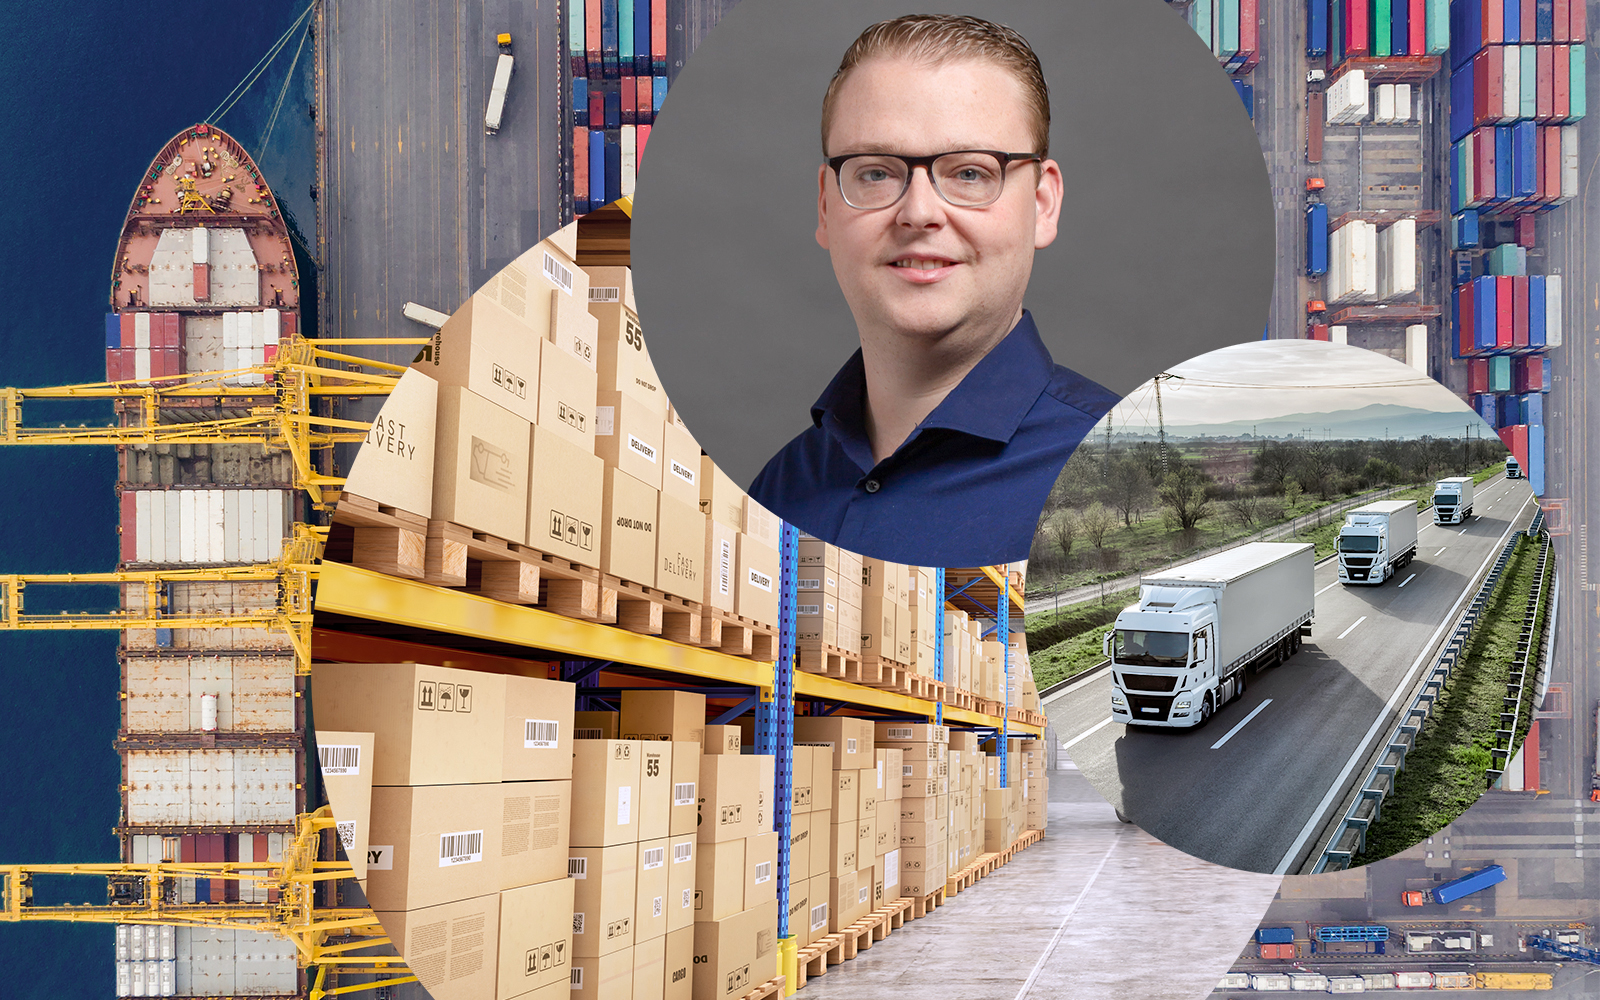 Portrait of Markus Hoff, Senior Consultant in the field of logistics management at valantic, in the background a warehouse and an industrial port